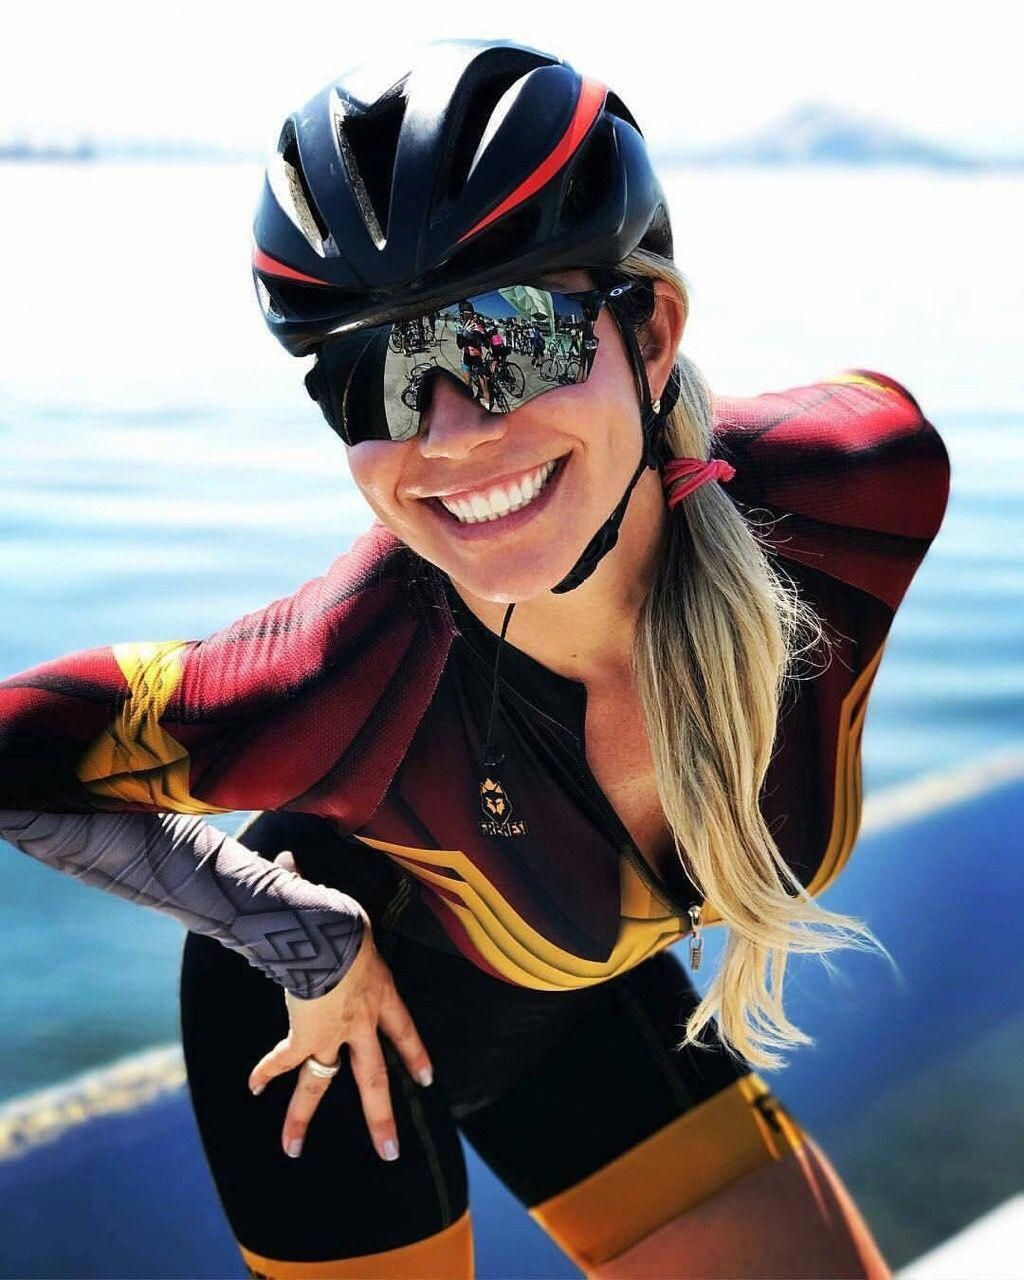 bfc2e8a709 tempting.... great smile..v4o  roadbikecycling Bicycle Women